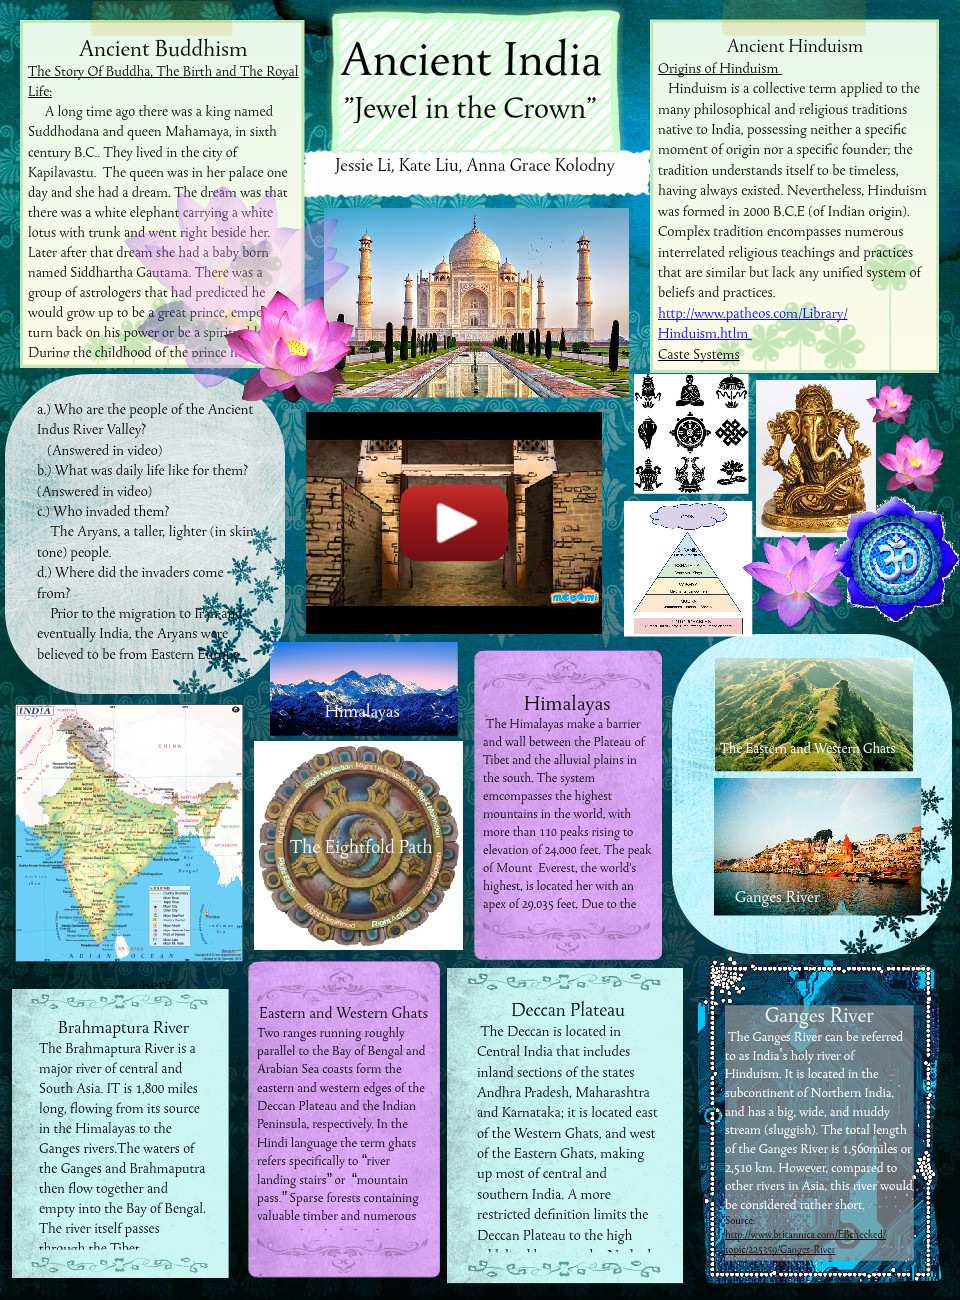 Miles And More India Ancient India Ancient Buddhism En Geography Himalayas